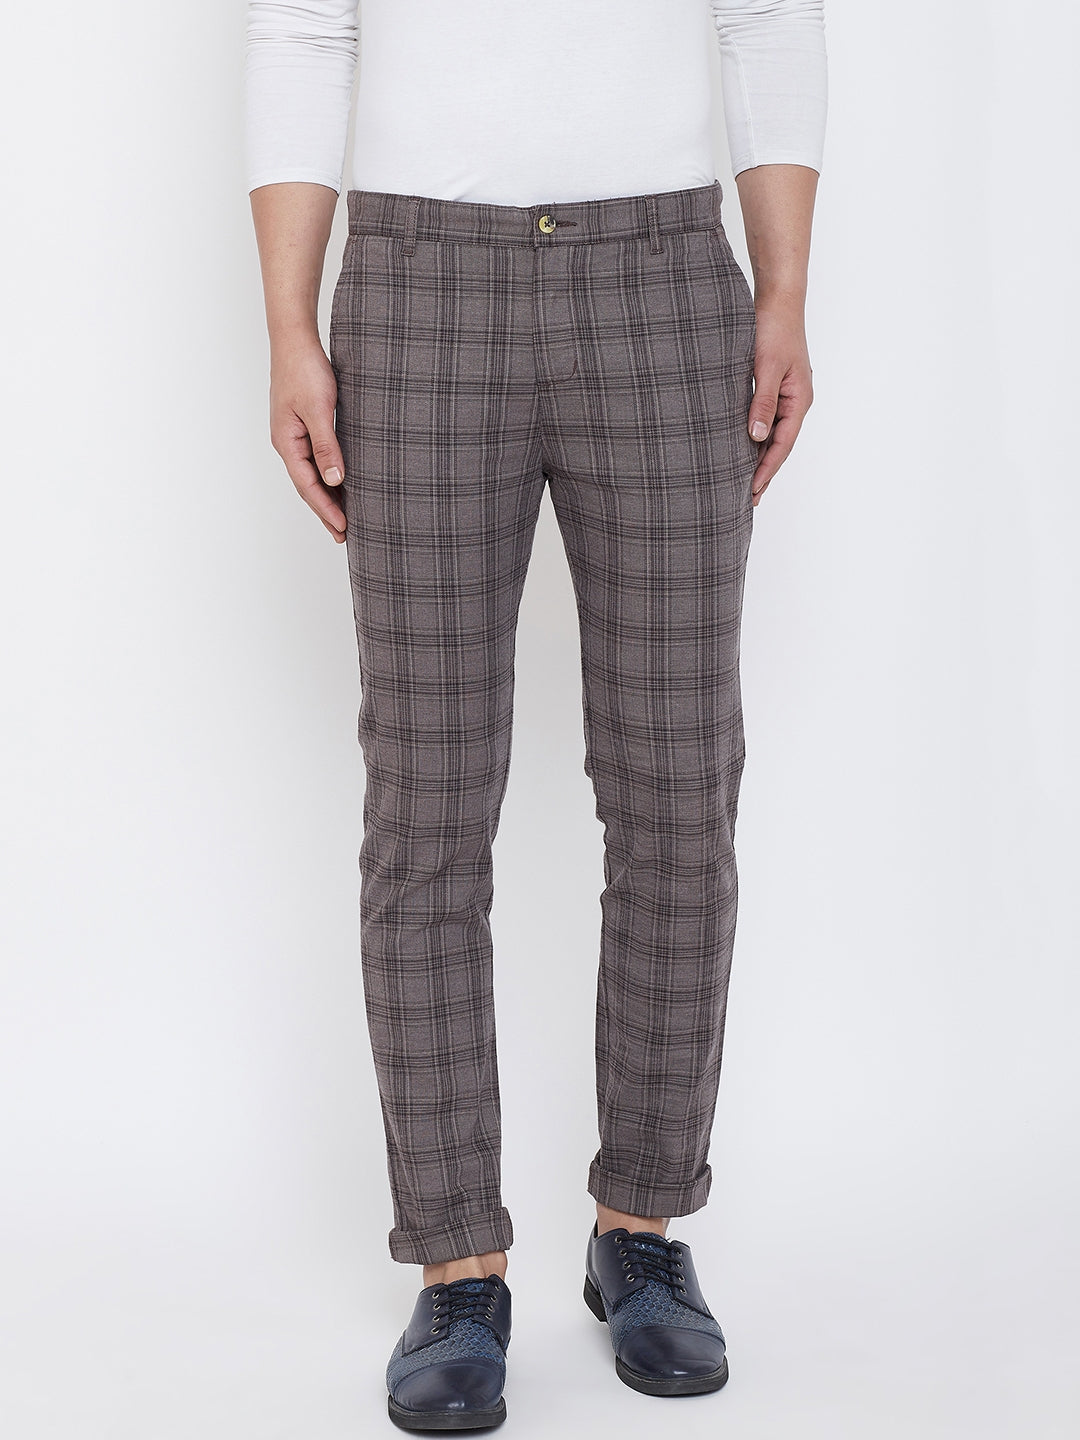 JUMP USA Men Grey Check Slim Fit Cotton Casual Trousers - JUMP USA